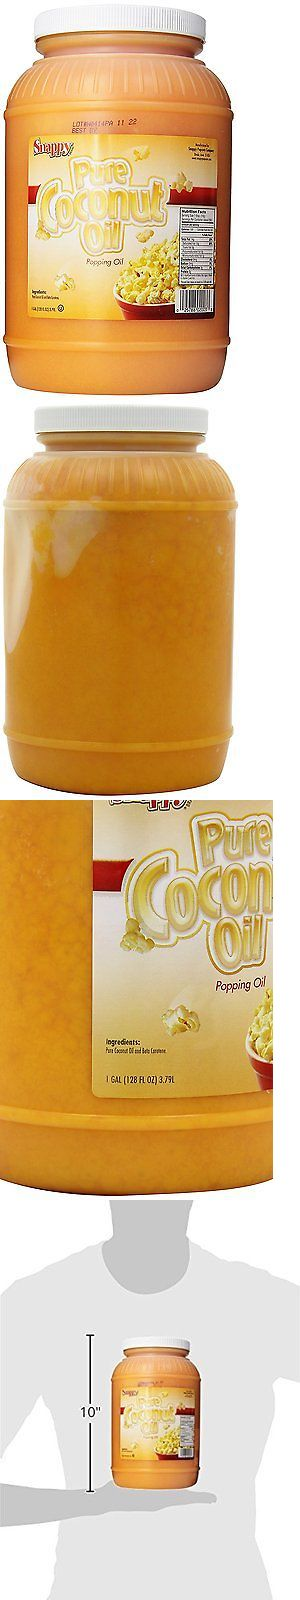 Popcorn 179181: Snappy Popcorn Colored Coconut Oil 1 Gallon -> BUY IT NOW ONLY: $30.51 on eBay!